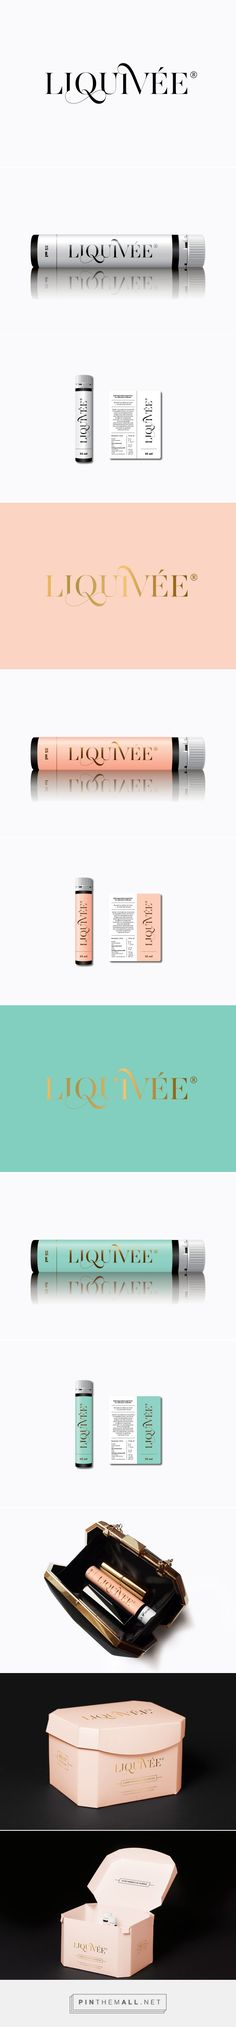 Liquivée by Kiss Miklos curated by Packaging Diva PD. A new type of beauty vitamins in soft and feminine packaging created via http://kissmiklos.com/liquivee